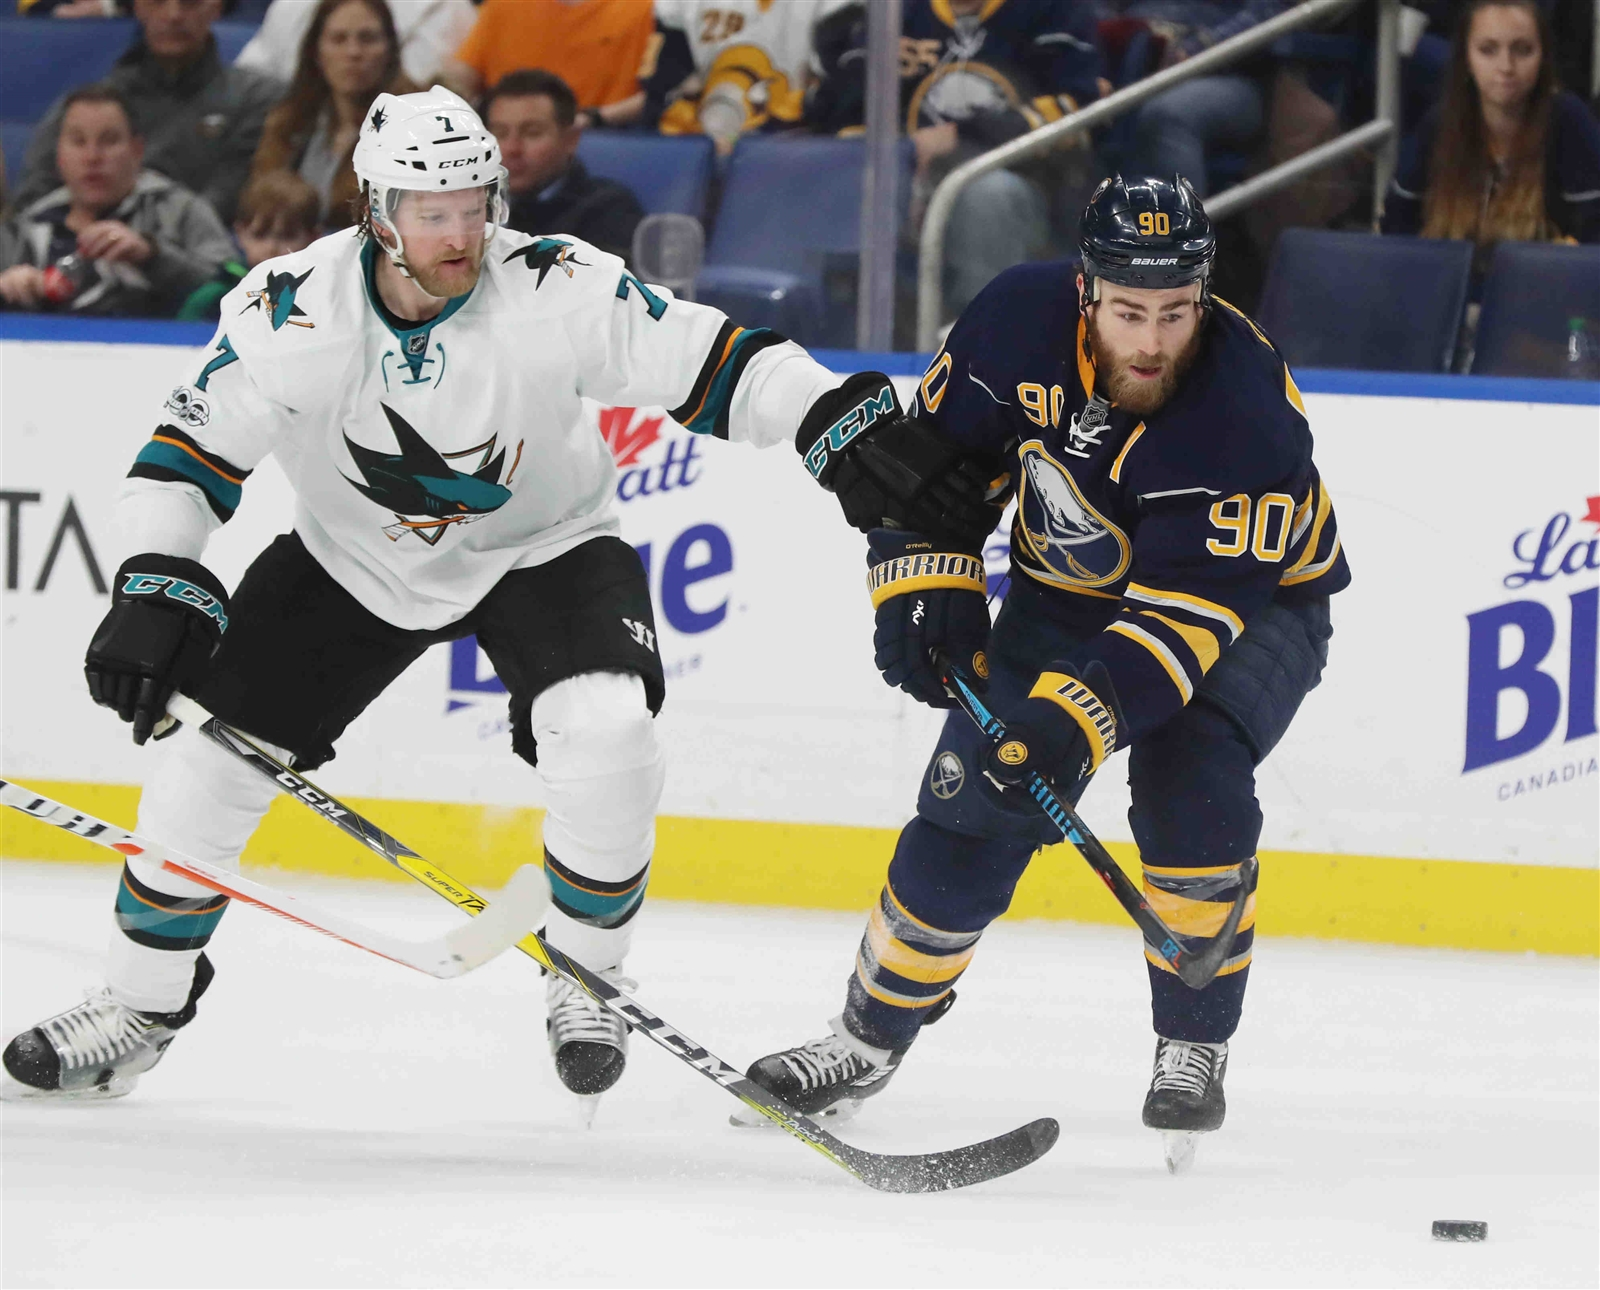 Ryan O'Reilly and Paul Martin battle for the puck last month in KeyBank Center (James P. McCoy/Buffalo News).